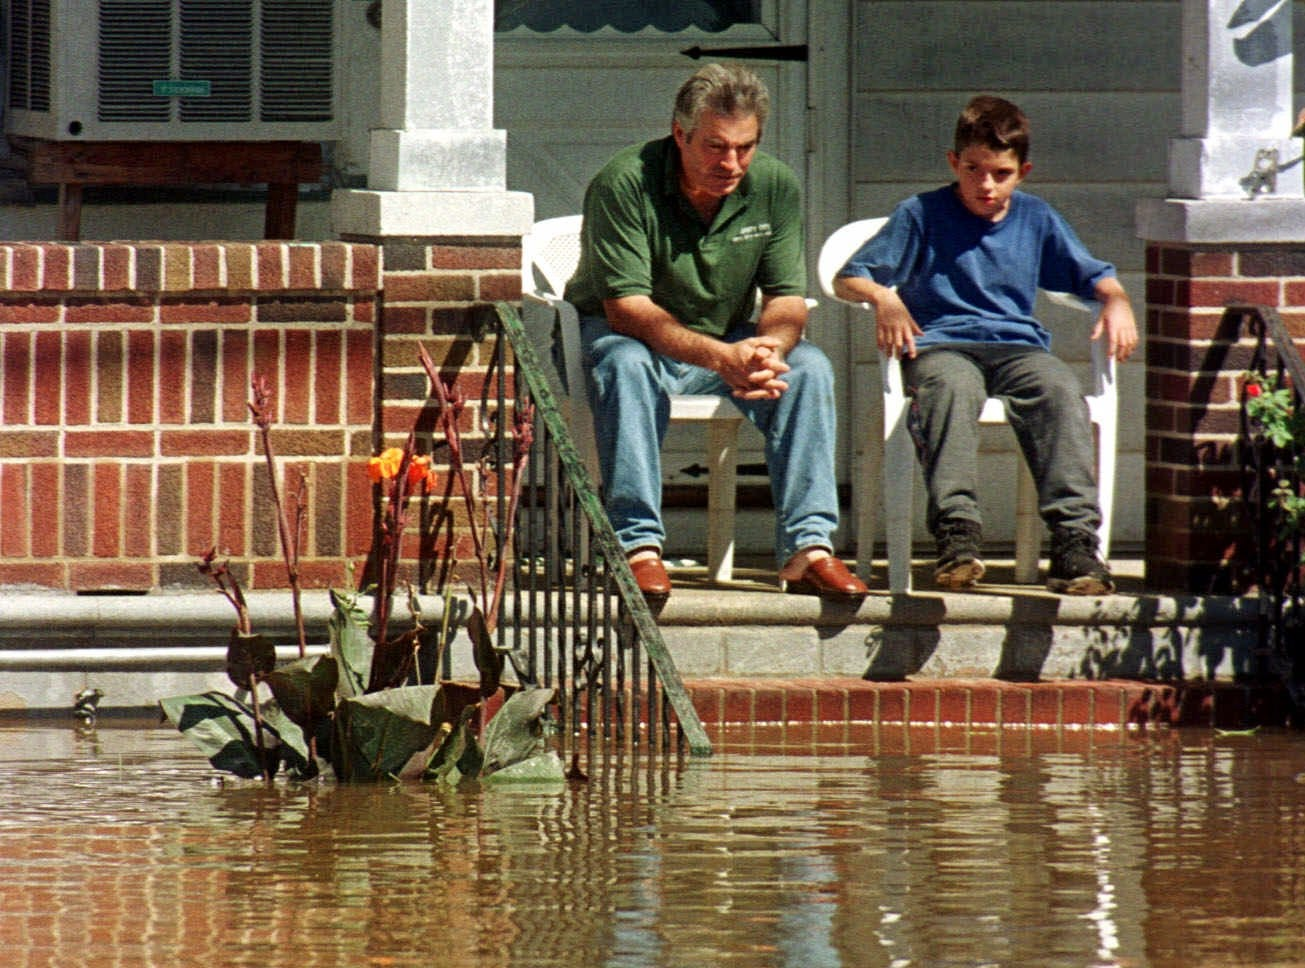 Sept. 17, 1999: A man and boy sit on their front porch surrounded by water and a  submerged car in their front yard in Lodi. Lodi is one of the towns around the state that was inundated by flood waters from Hurricane Floyd.